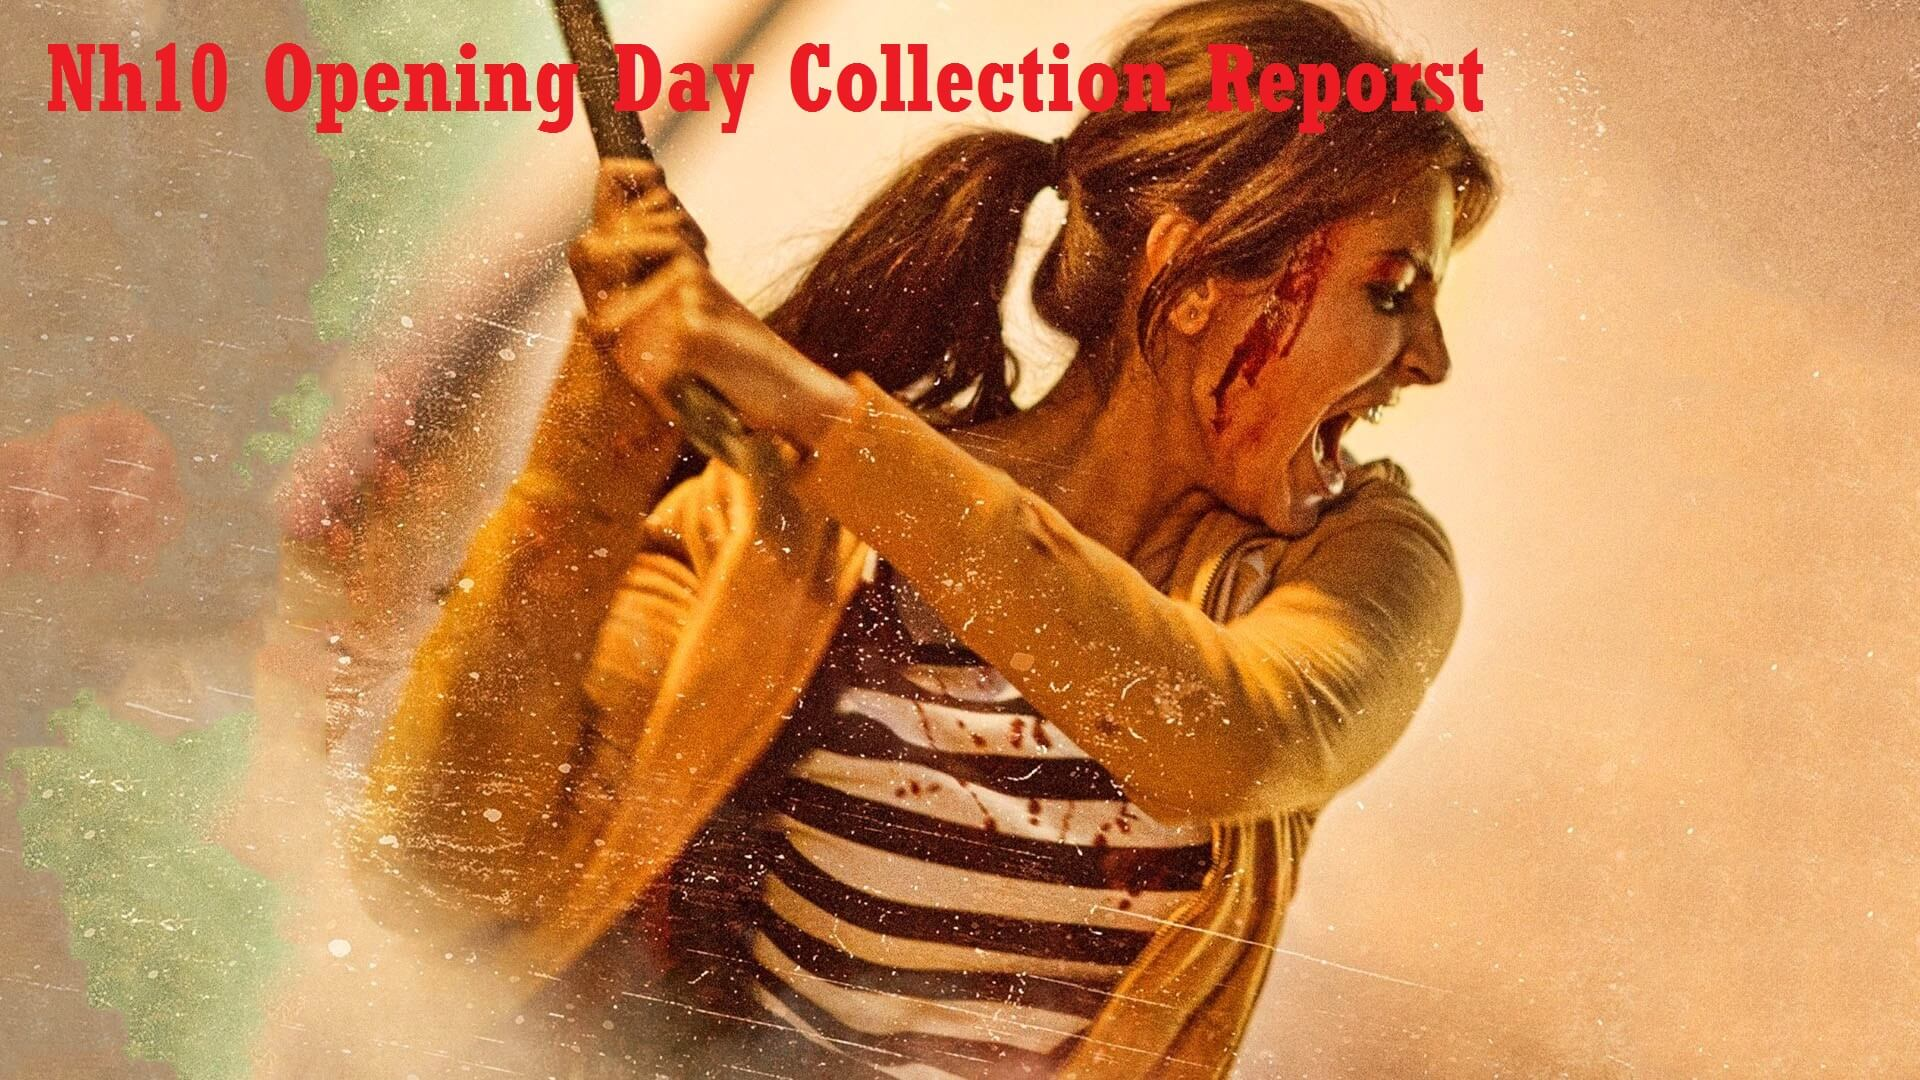 Anushka Sharma's NH10 Opening Day Box Office Collection Report